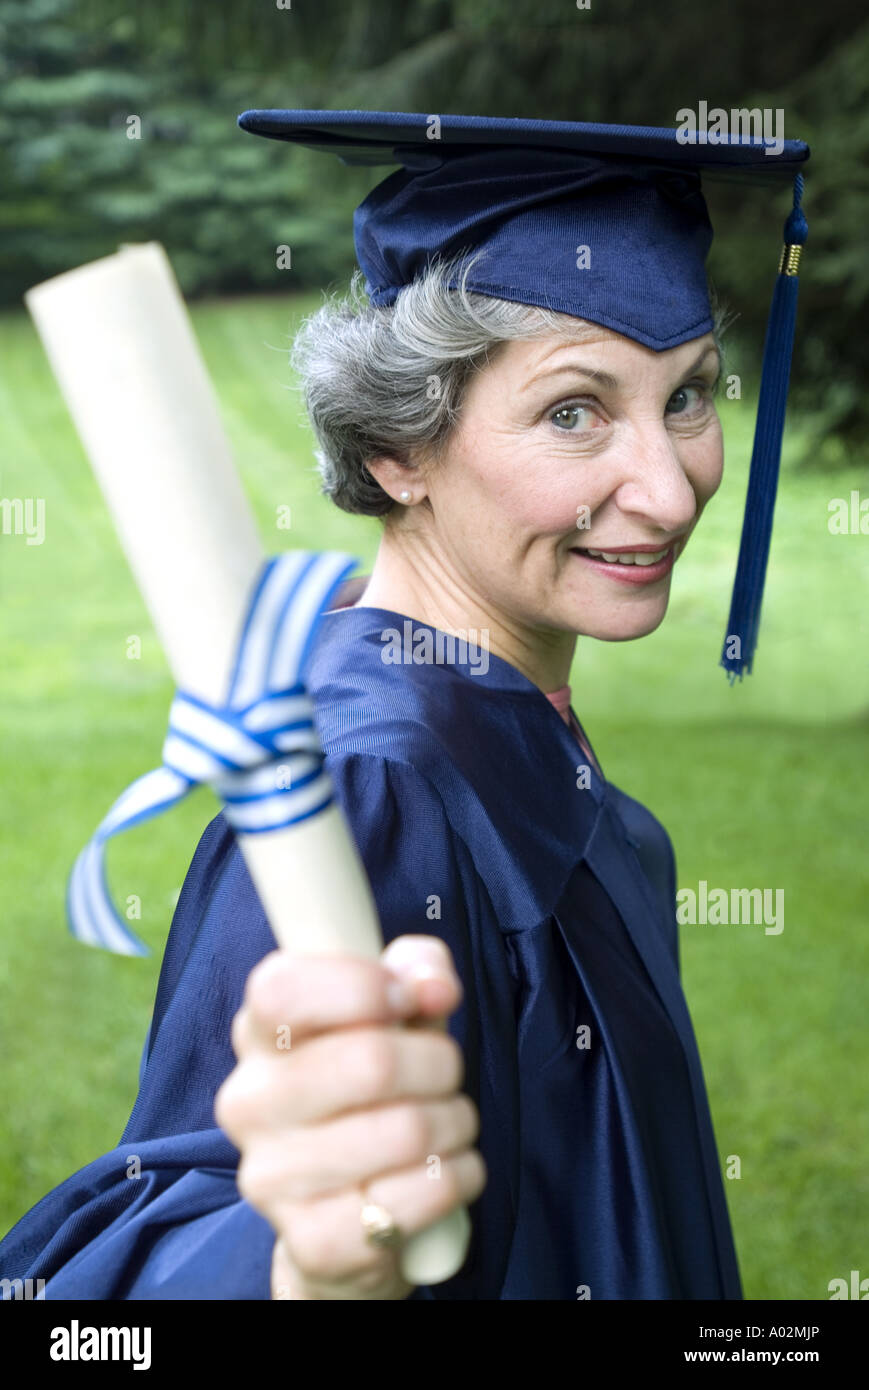 Senior woman college graduate with diploma - Stock Image